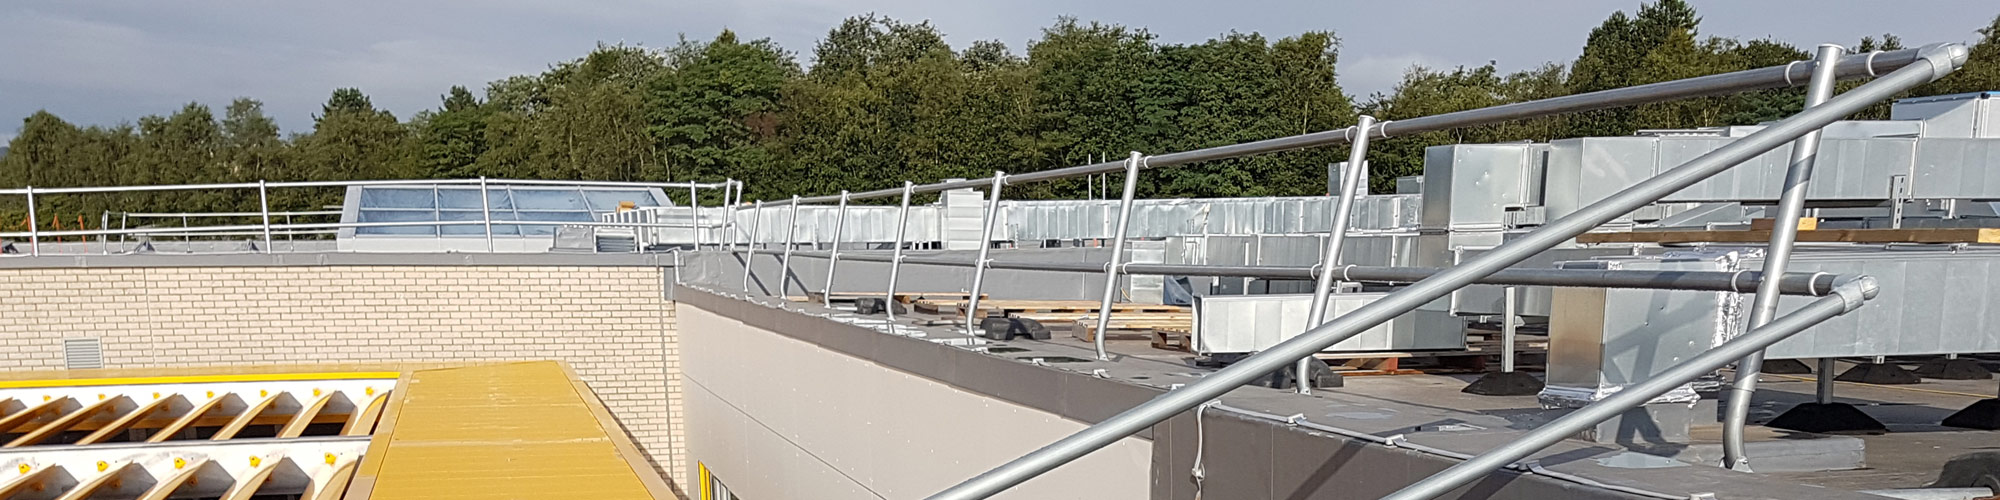 Pentrehafod School Roof Guardrail Project